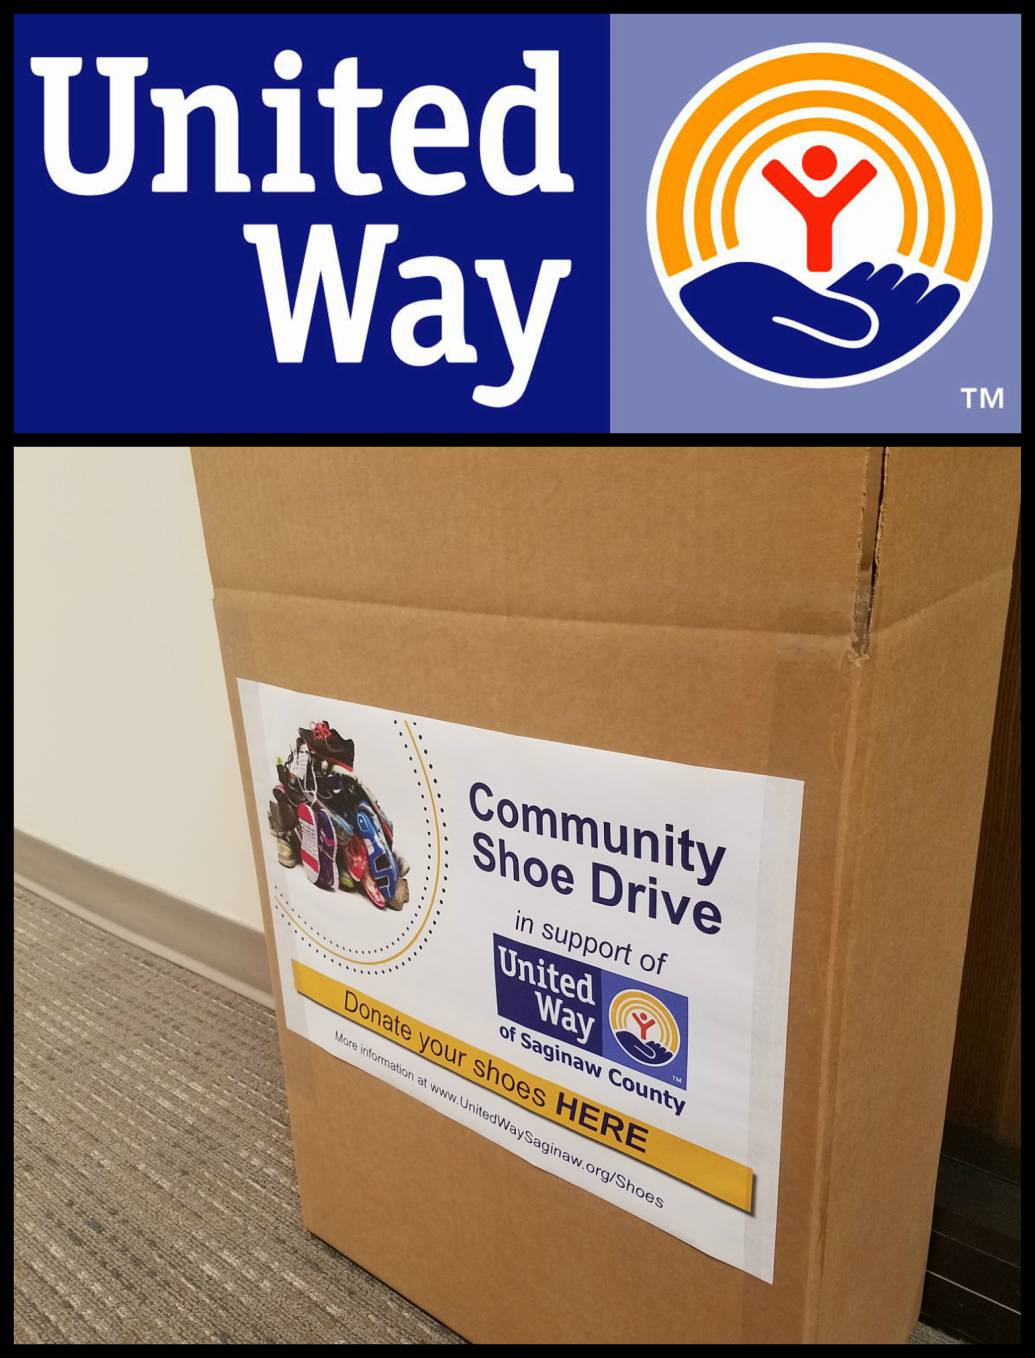 Collection bin for United Way of Saginaw County's used shoe drive